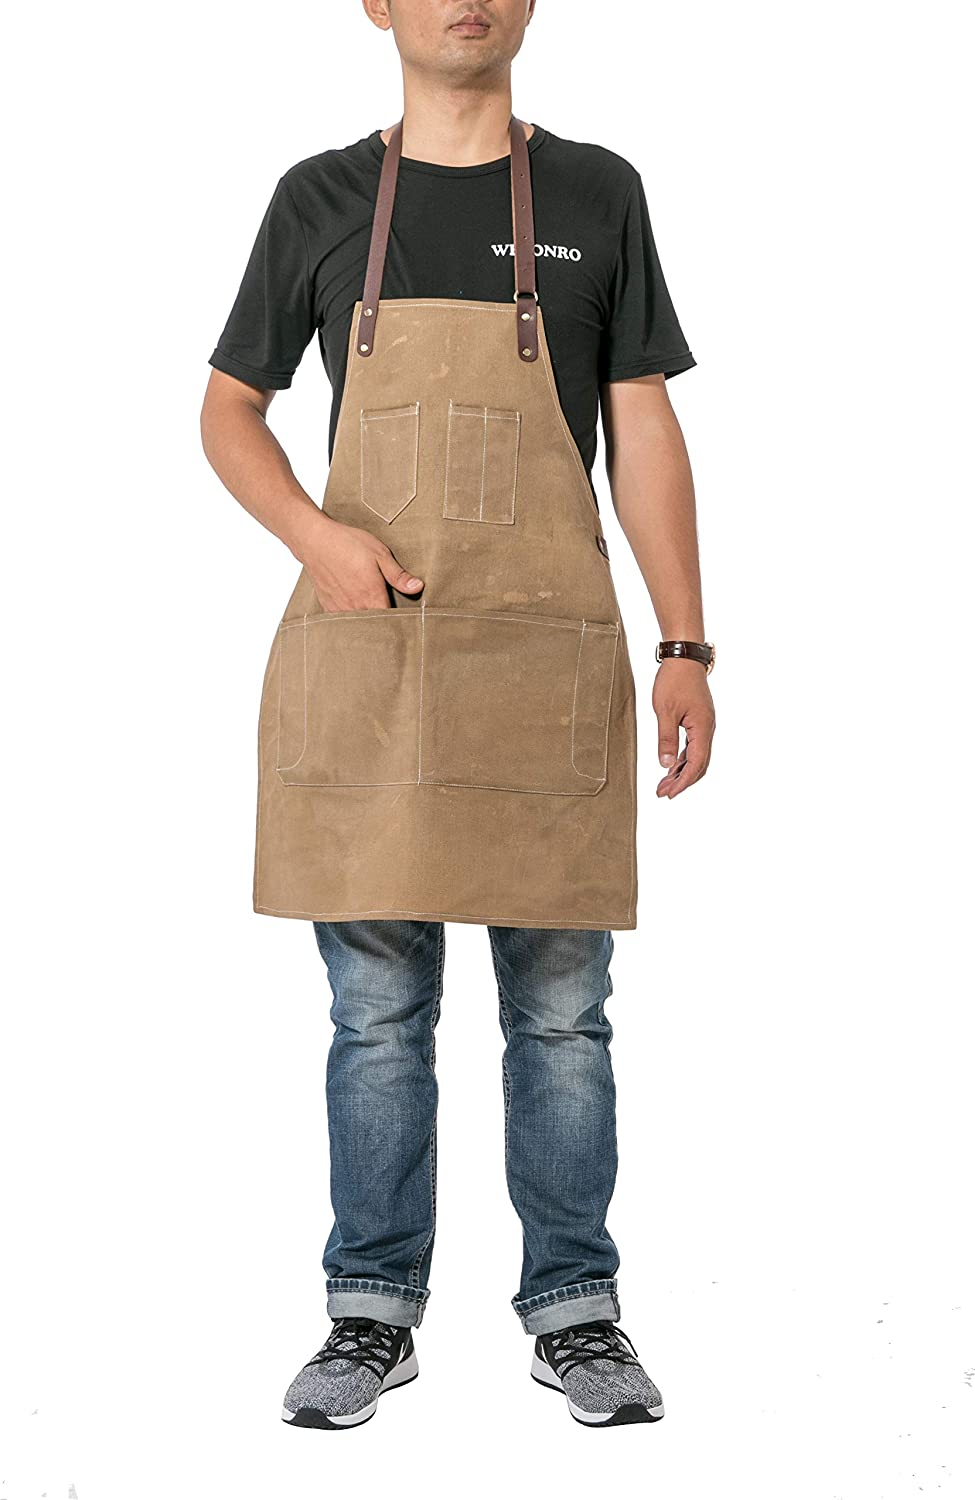 Grey Adjustable Waist Ties /& Leather Neck Strap Tool Aprons for Women Men CYWQ31 ChengYi 12 OZ Waxed Canvas Work Apron 7 Pockets Stylish Durable Coffee//Chef//Workshop Apron Pockets and Pen Holder